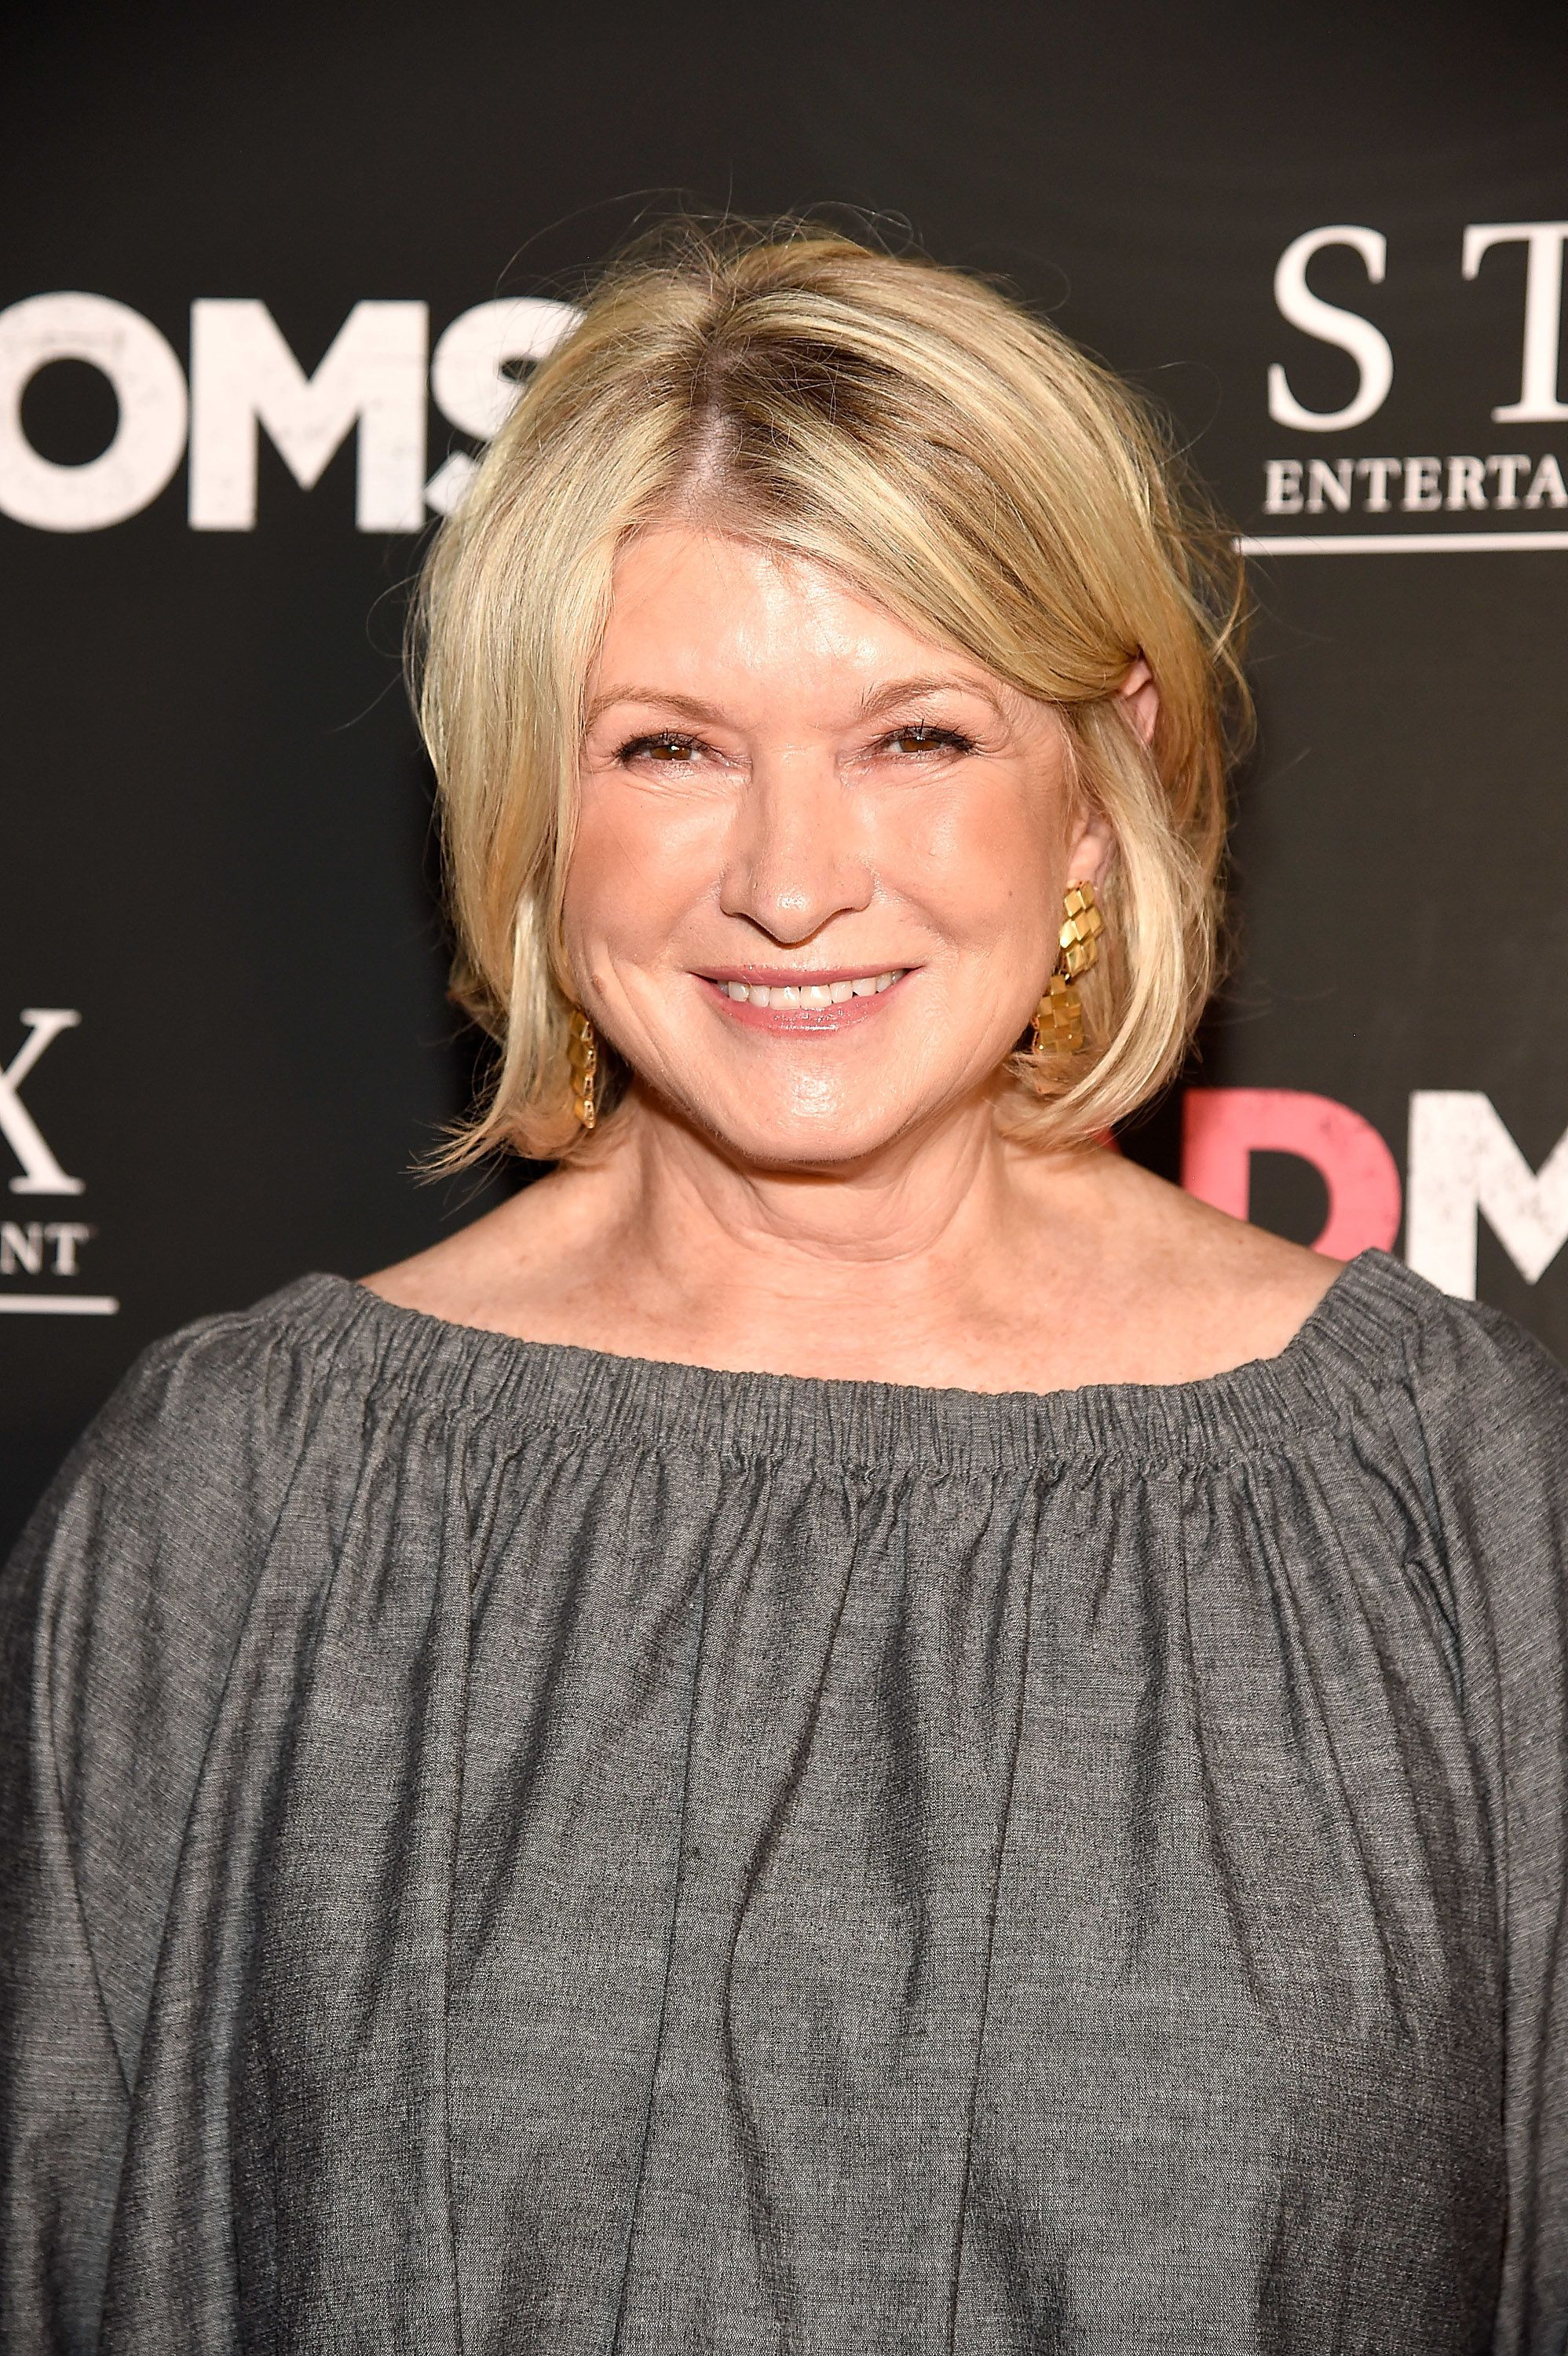 NEW YORK, NY - JULY 18:  Martha Stewart attends 'Bad Moms' New York premiere at Metrograph on July 18, 2016 in New York City.  (Photo by Kevin Mazur/WireImage)